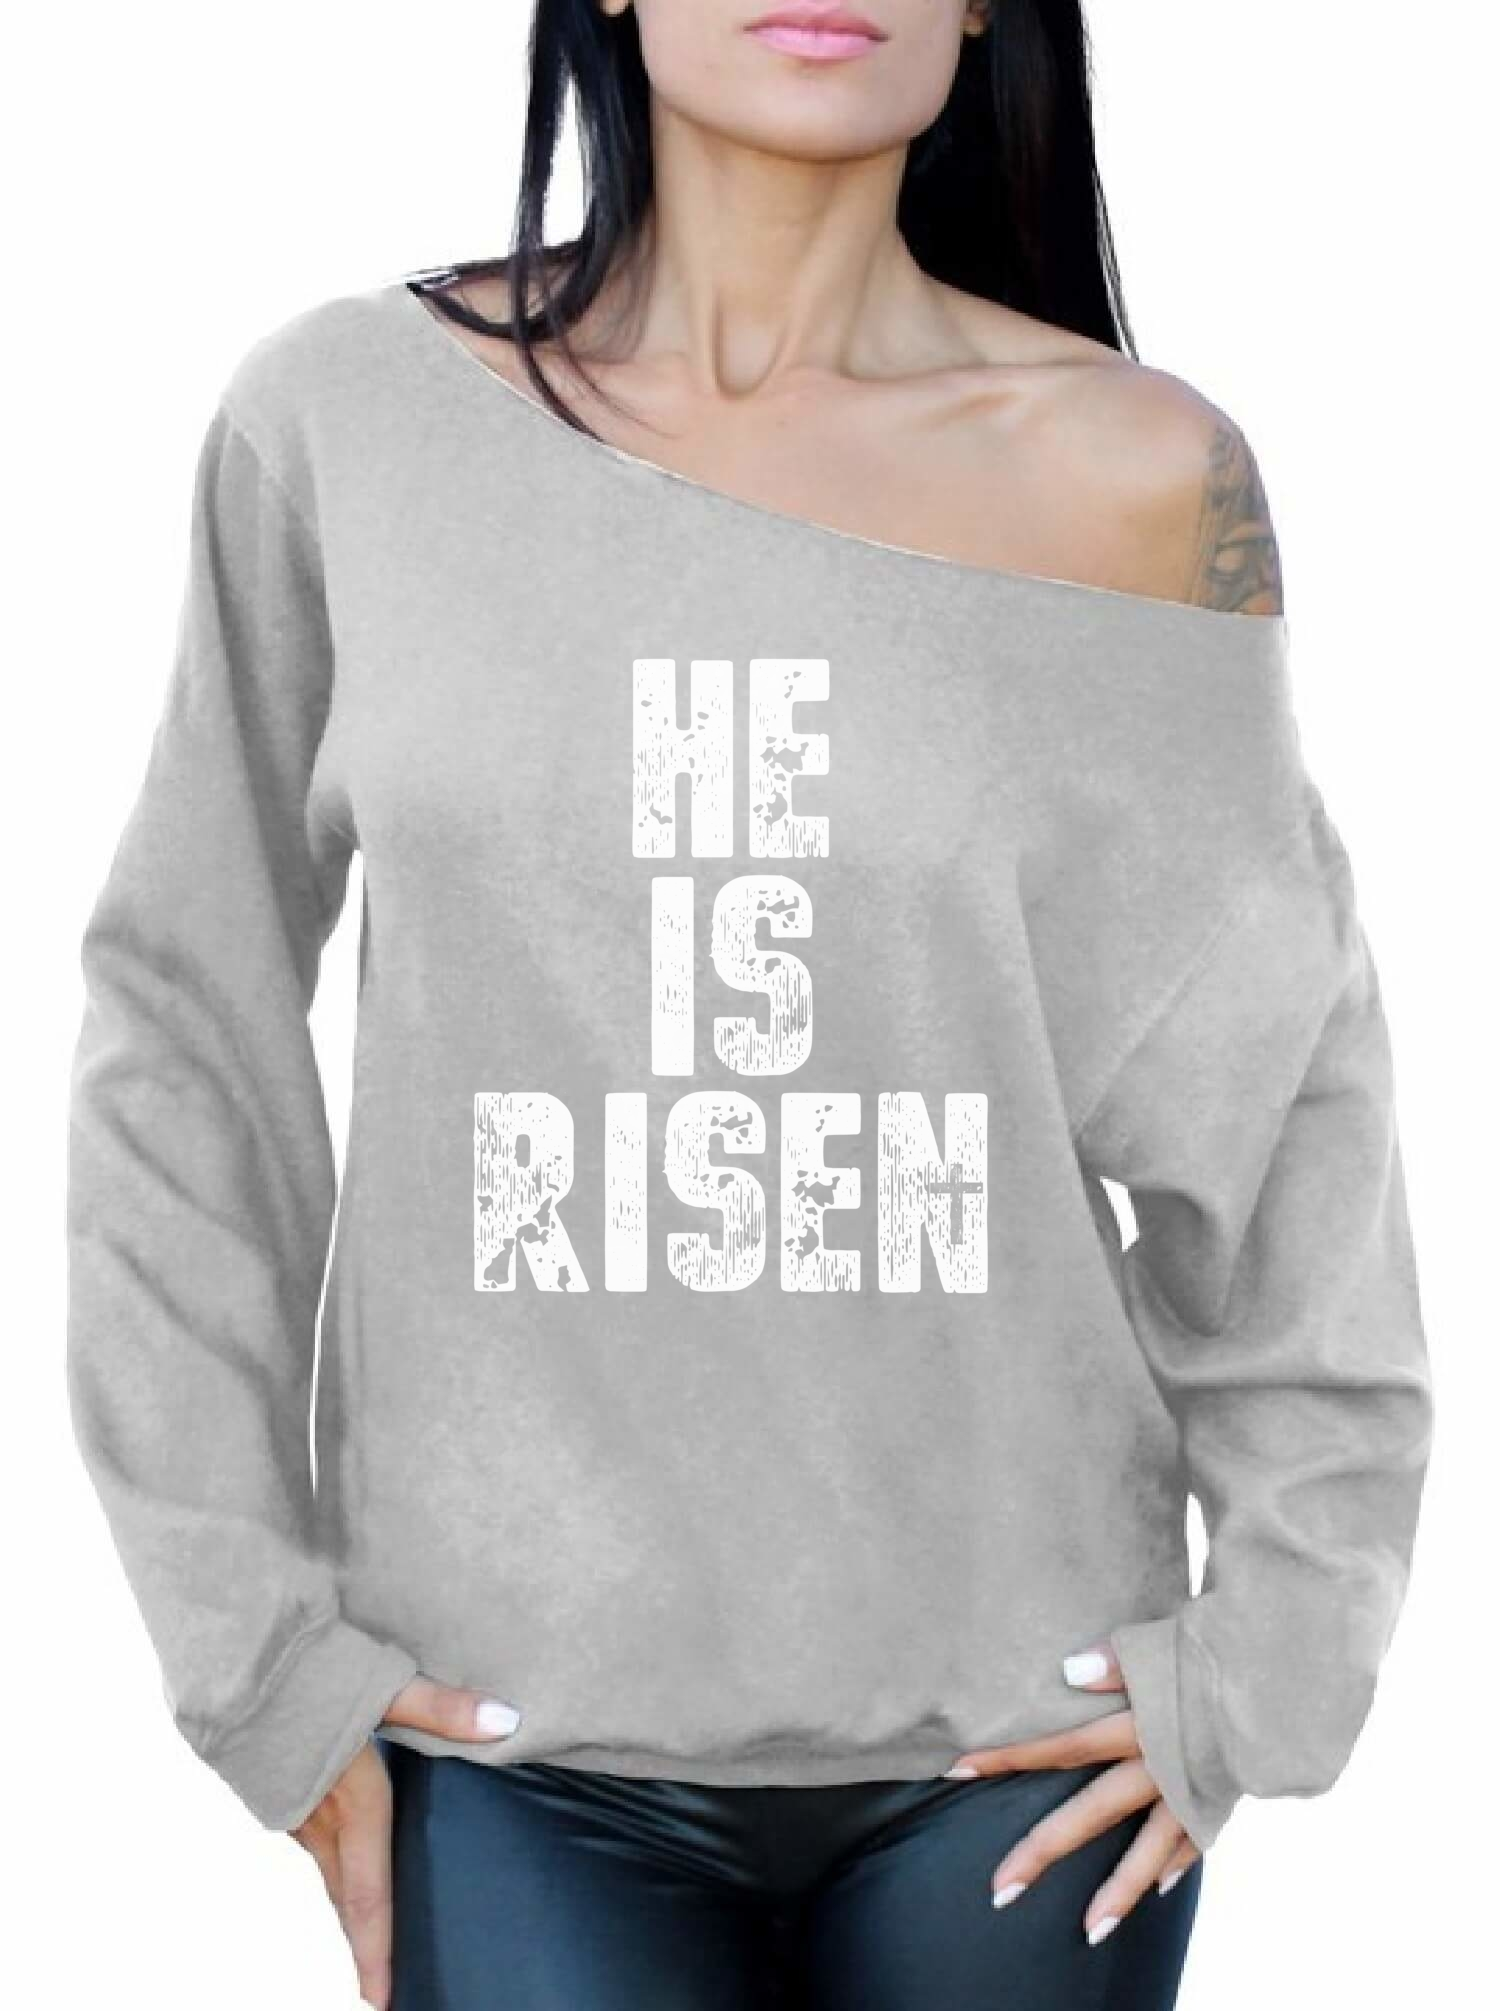 He is risen womens off shoulder sweatshirt christian easter gifts picture 5 of 5 negle Choice Image